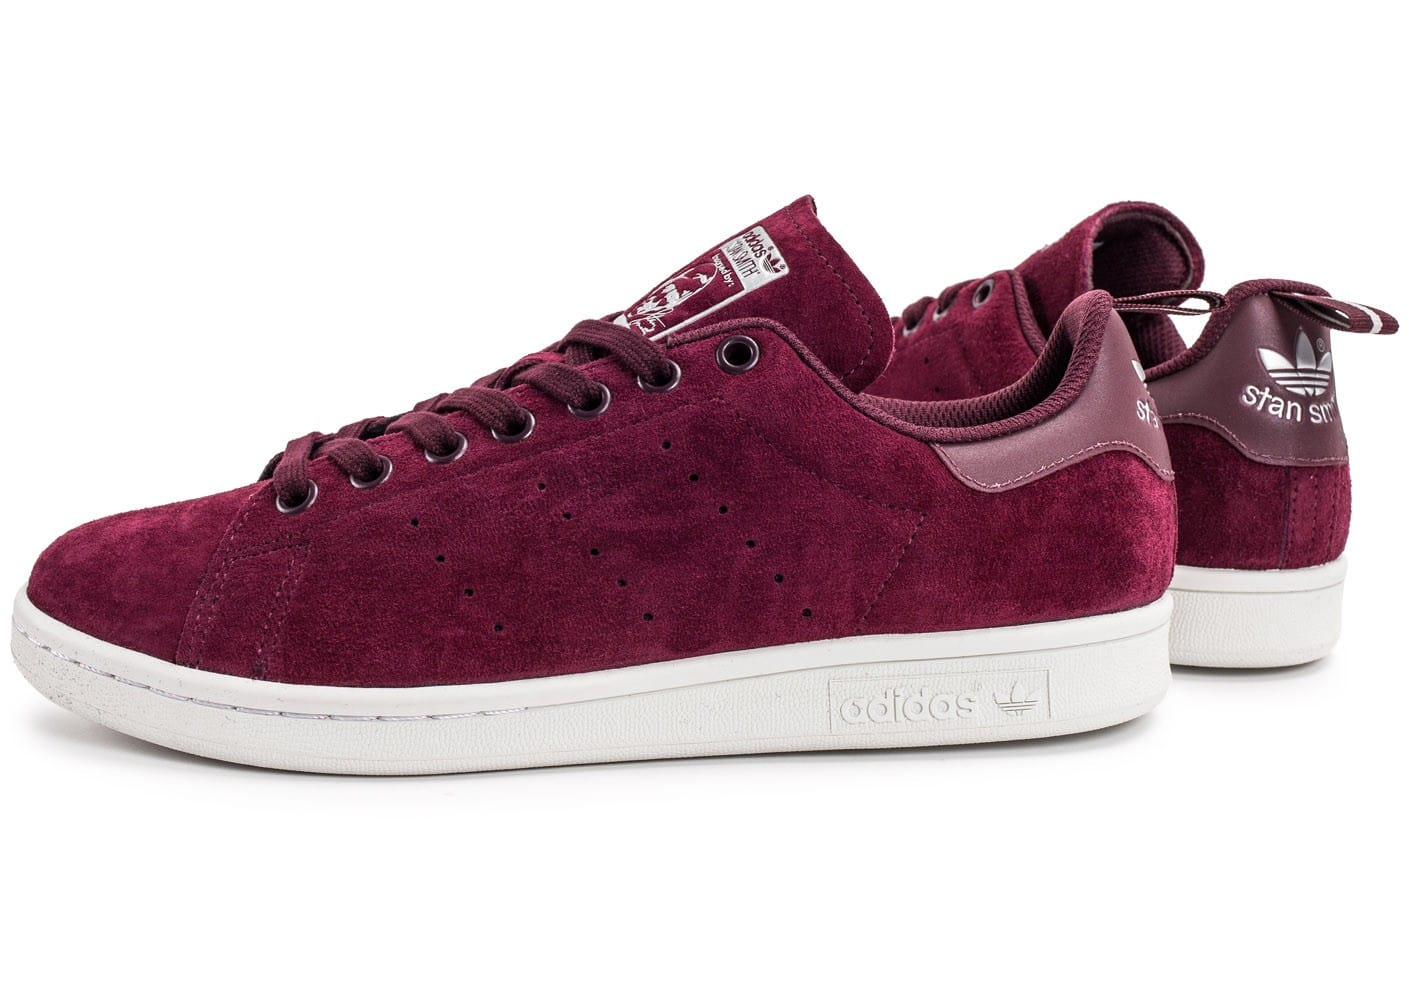 Stan Bordeaux Homme Chaussures Adidas Baskets Suede Chausport Smith 92IHED